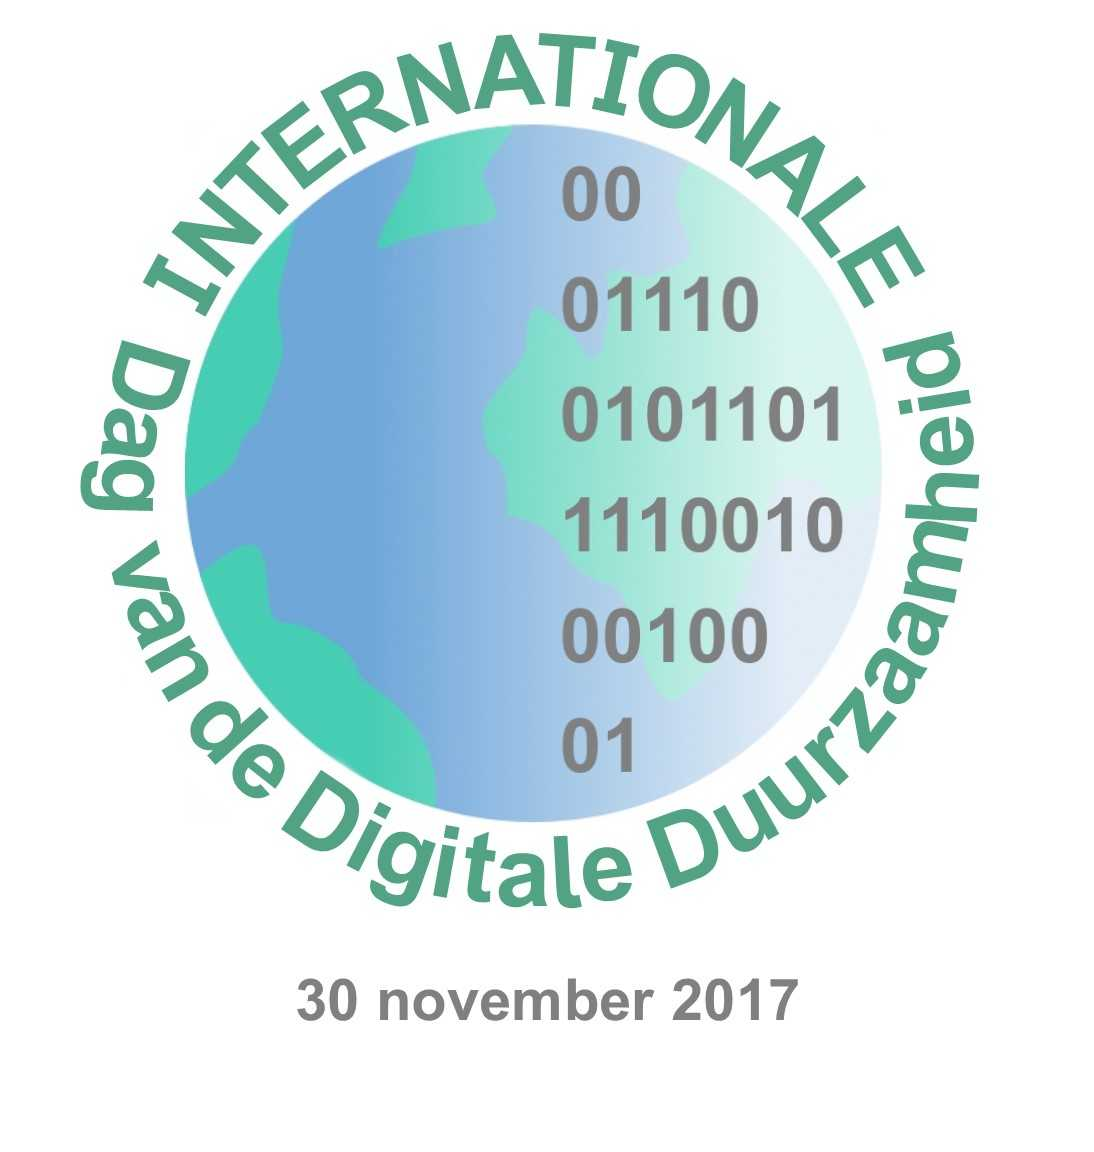 International Digital Preservation Day 2017